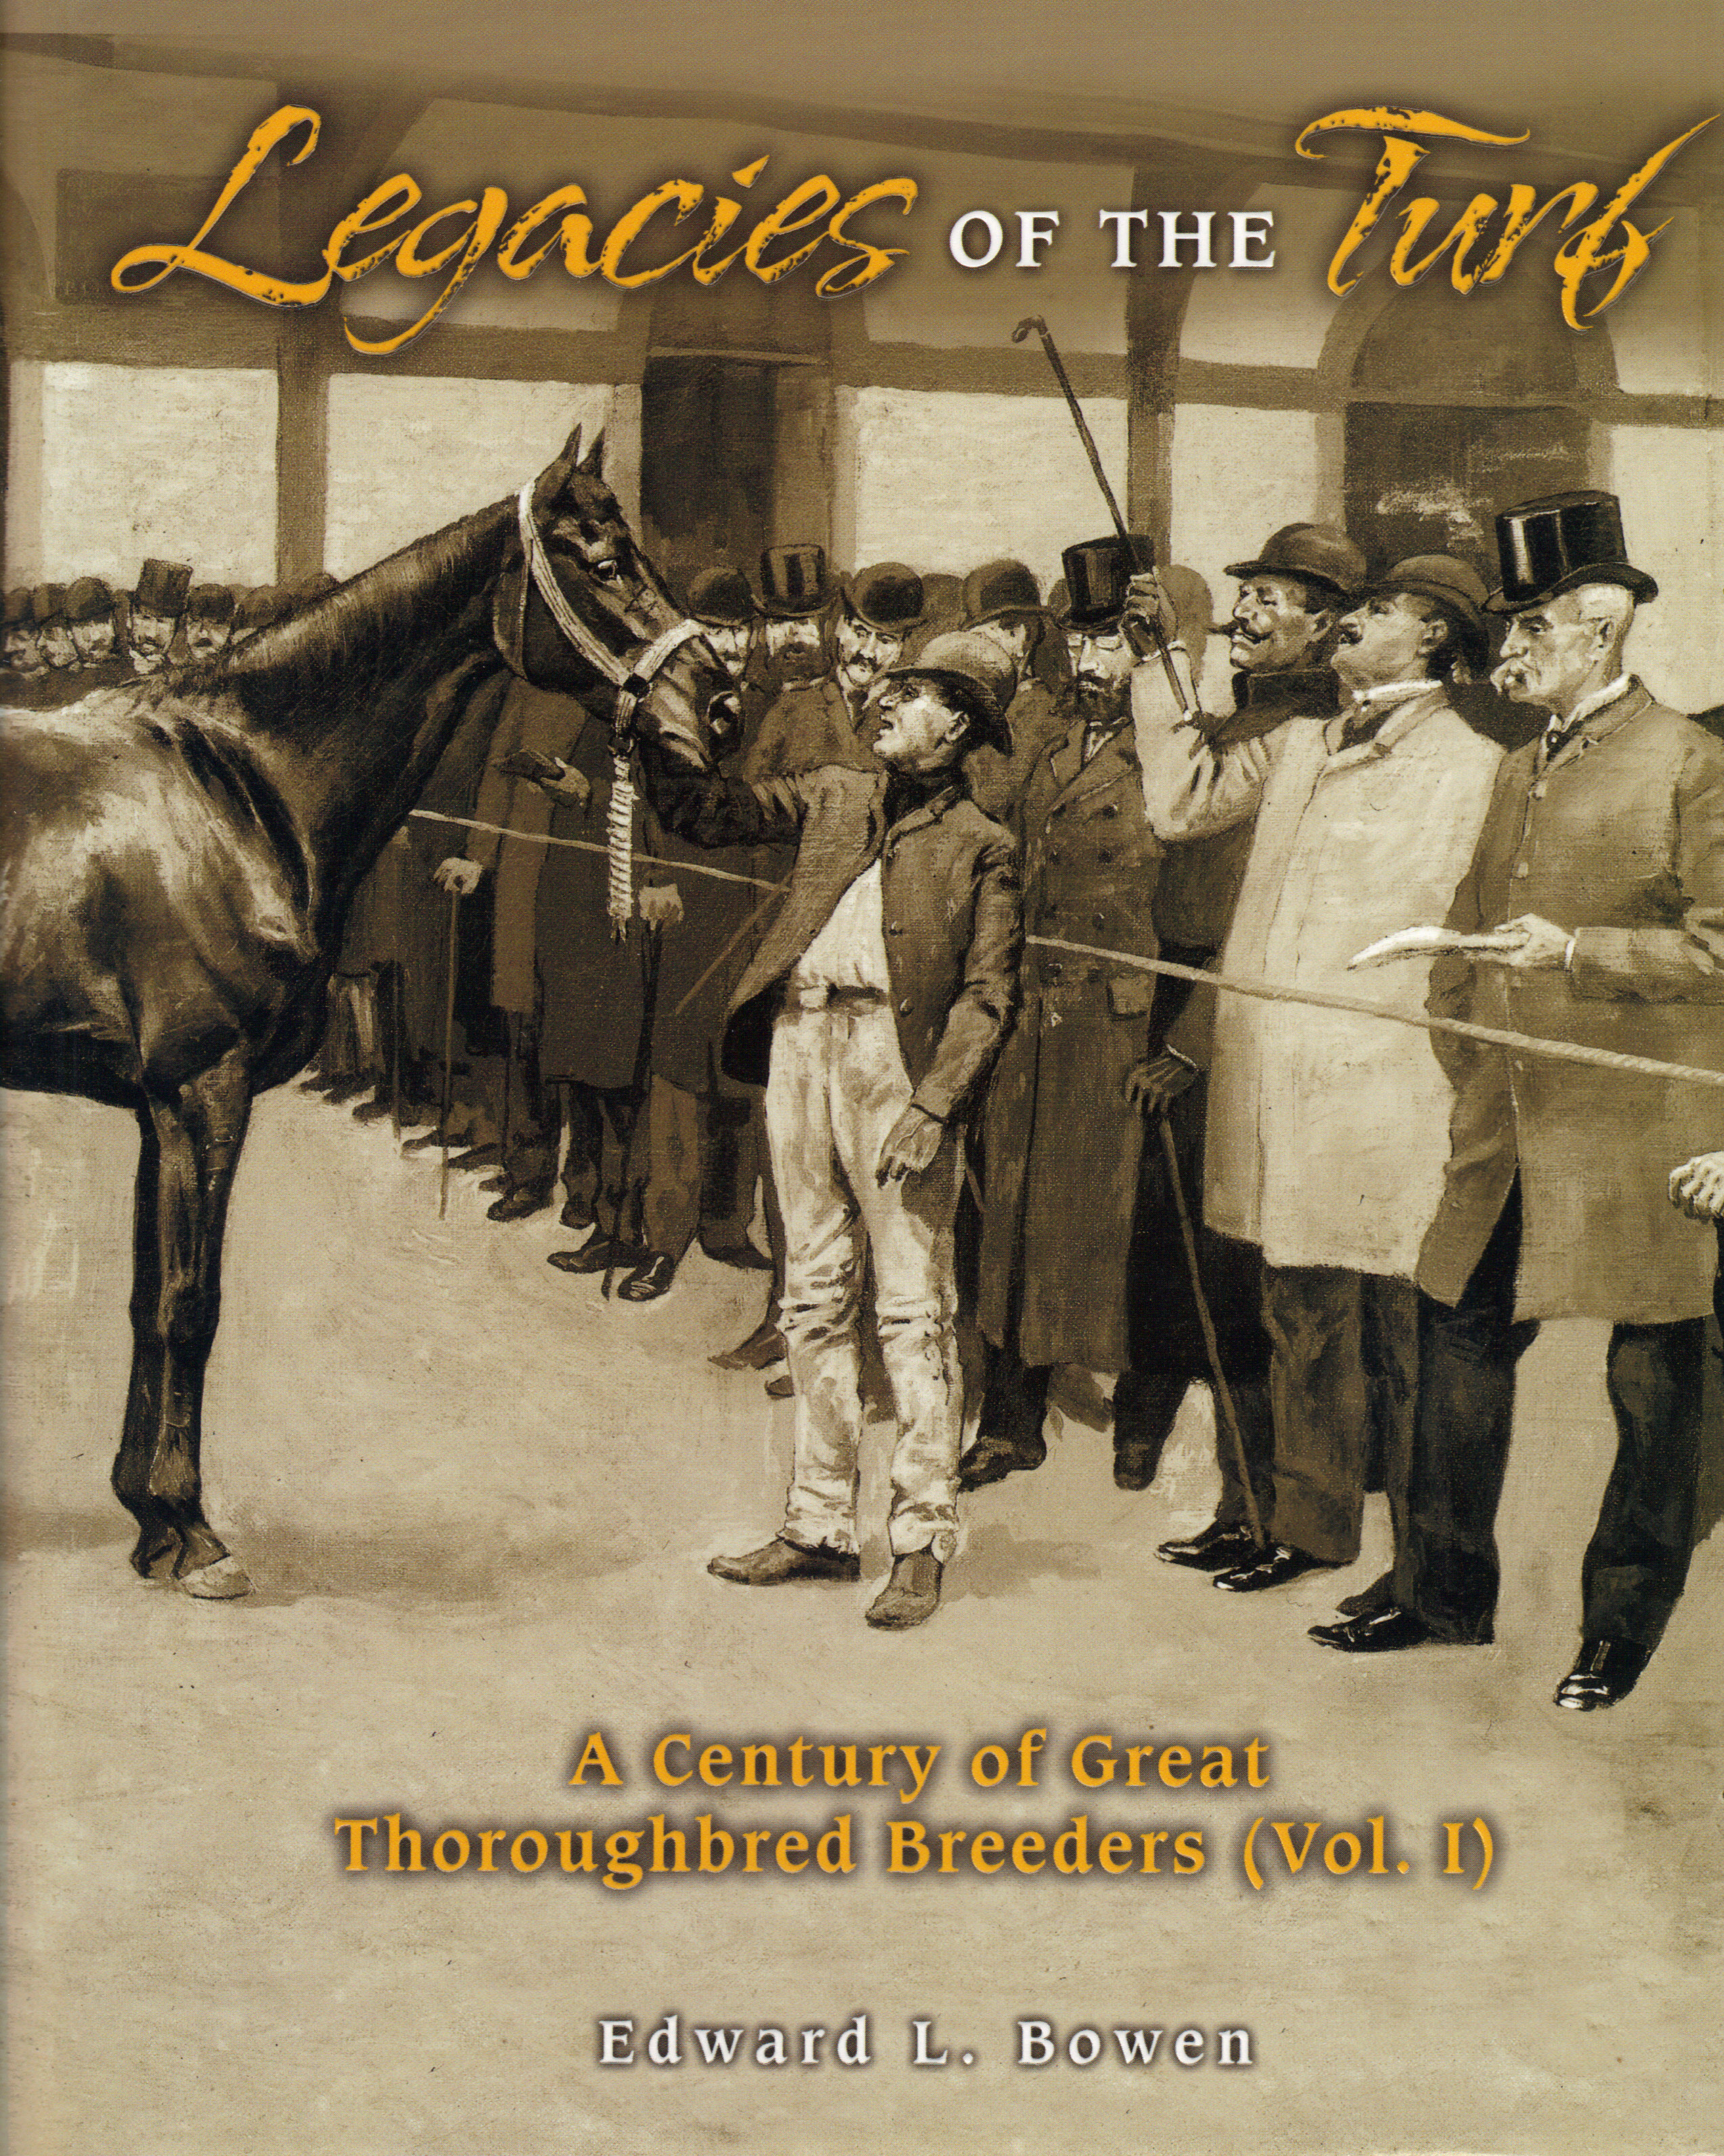 Image for LEGACIES OF THE TURF ~ A Century of Great Thoroughbred Breeders (Vol. 1